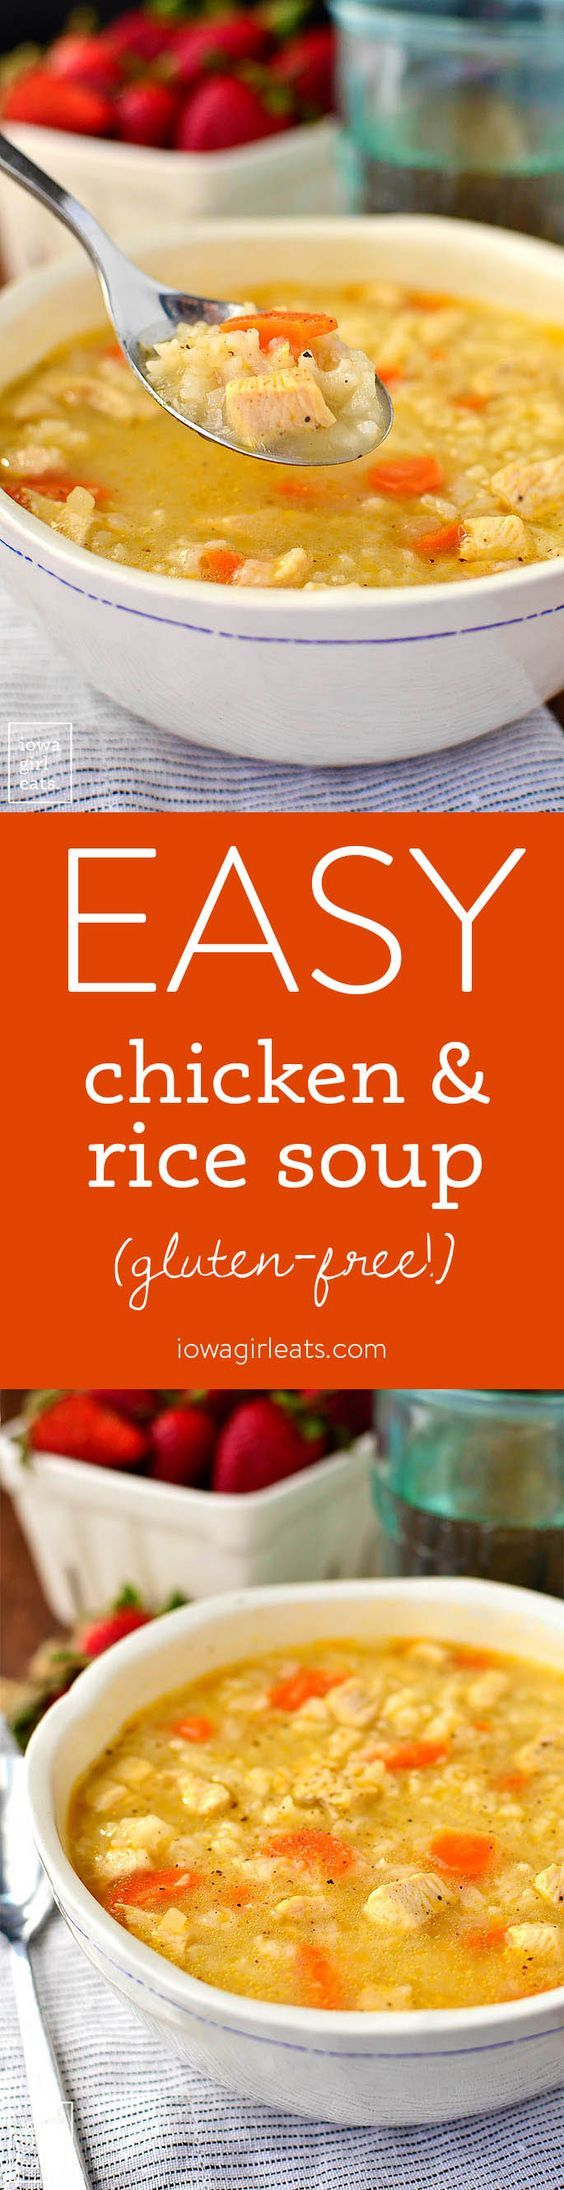 Easy Chicken and Rice Soup is a quick and simple gluten-free soup recipe that the entire family will love. Healthy comfort food in a bowl!   iowagirleats.com